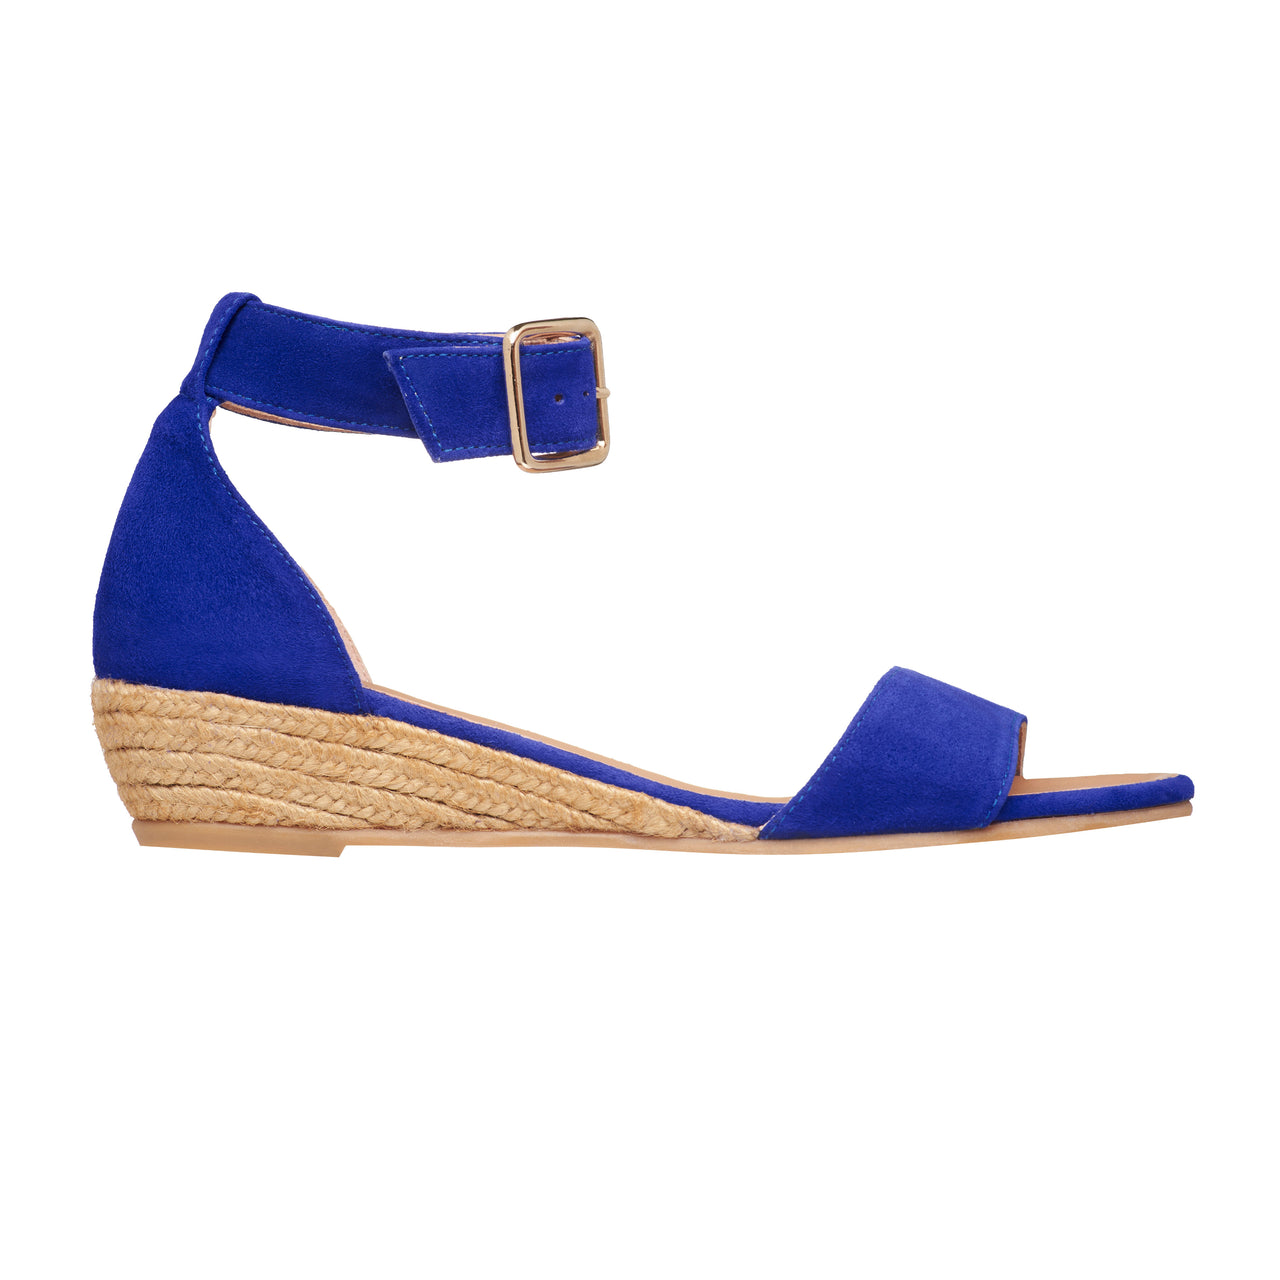 NELI Klein Blue espadrilles - Badt and Co - singapore